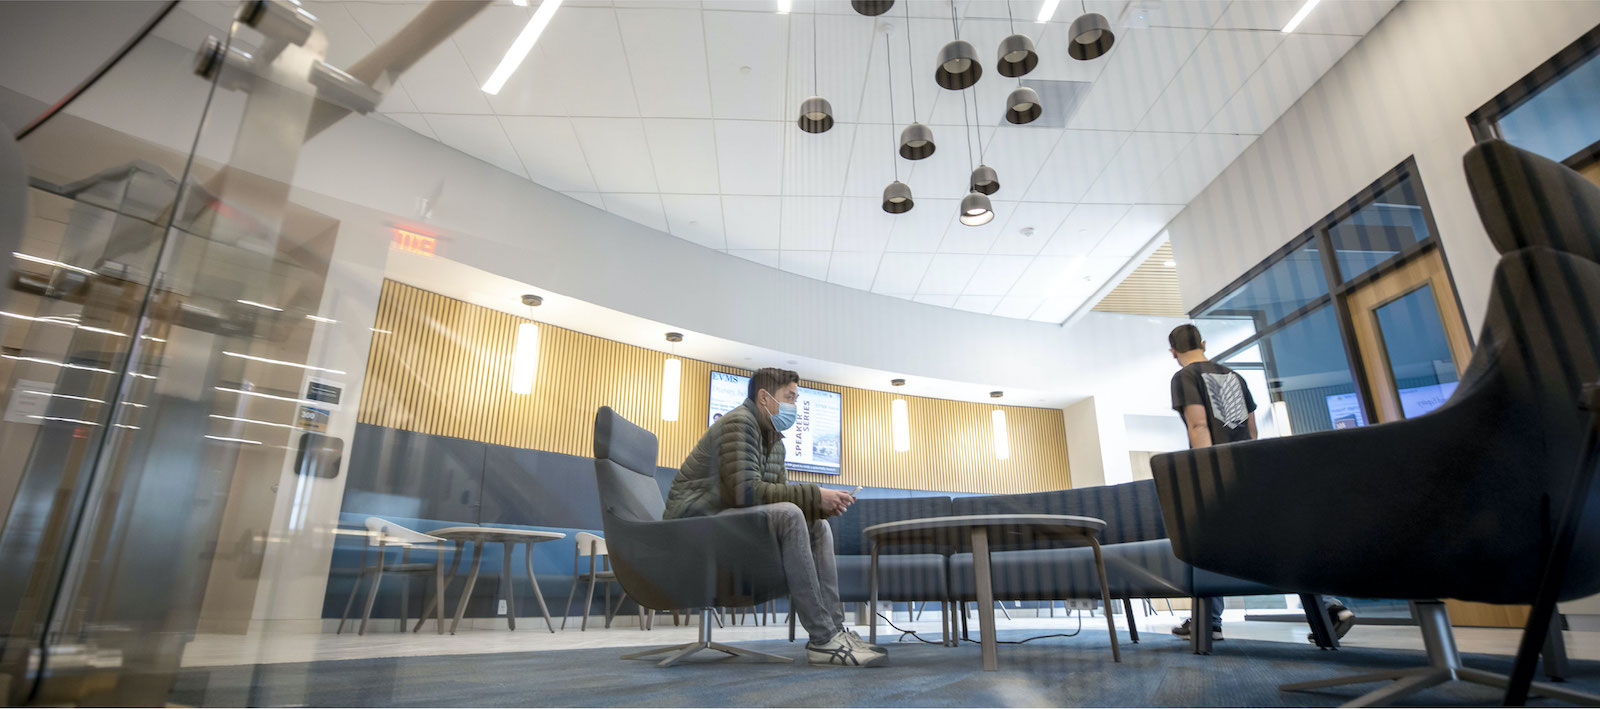 One of several lobby areas in Waitzer Hall furnished with modern tables and chairs; and outfitted with wood paneling, wall sconces and overhead light fixtures. Lobby areas in the education podium provide space for students to mix (post-COVID-19), study or relax.